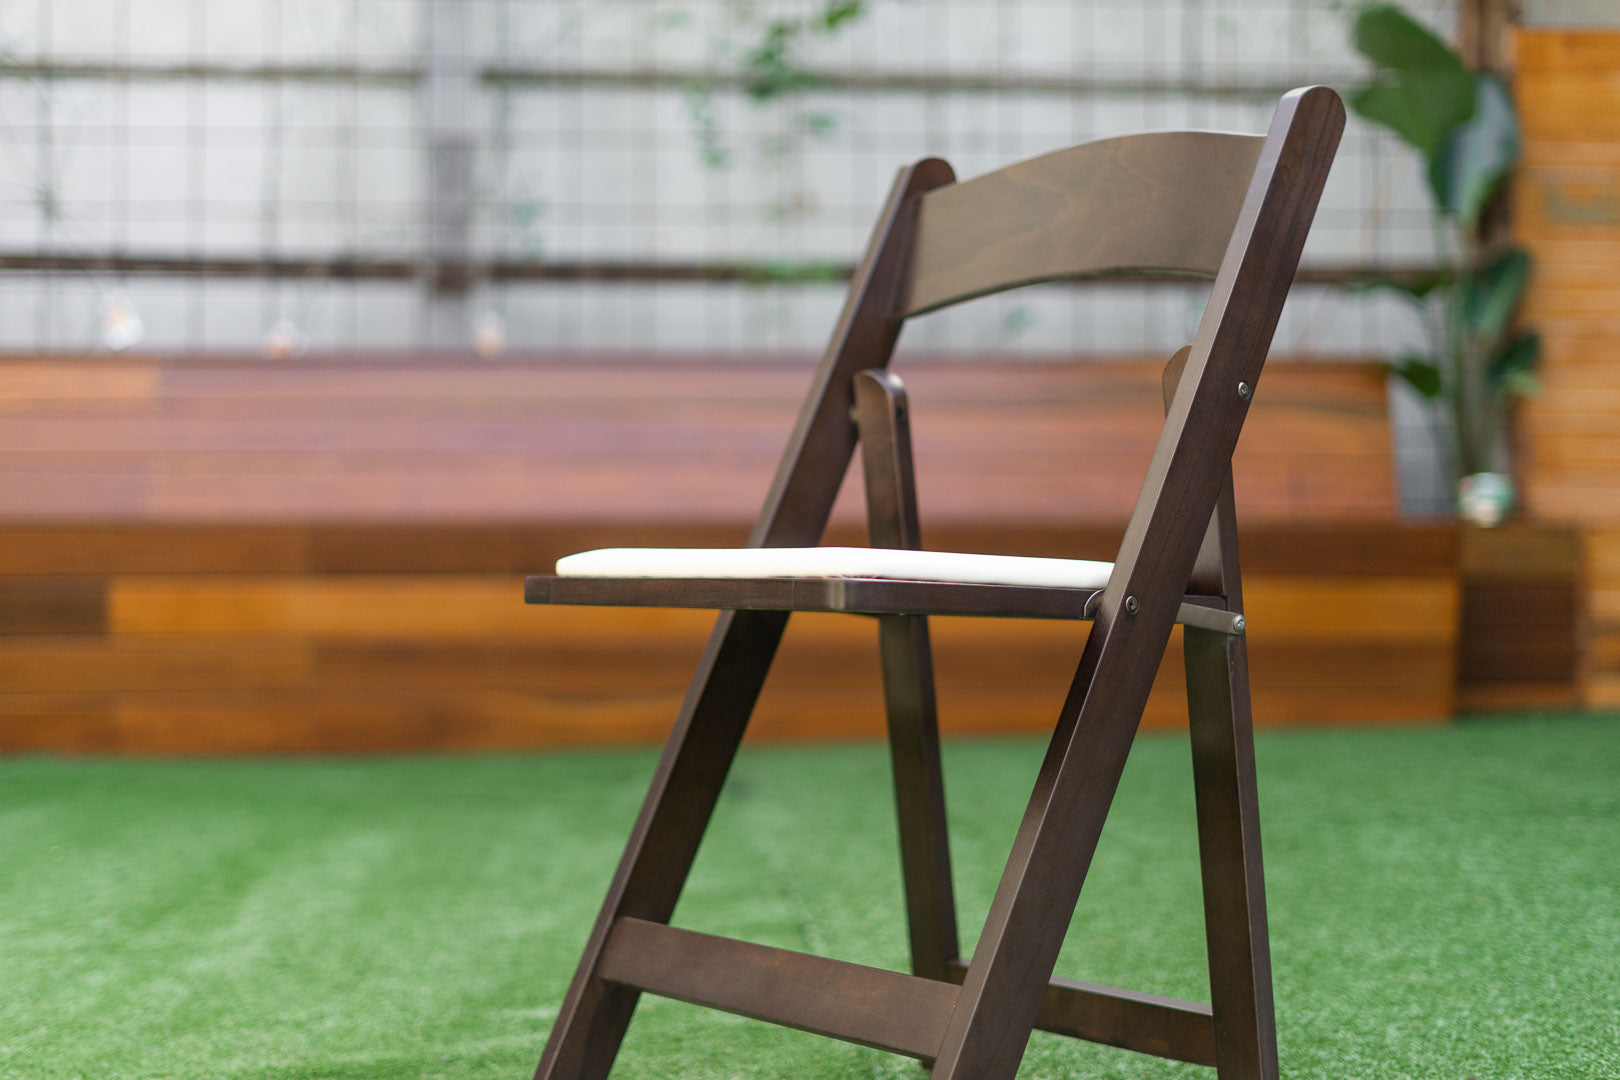 Timber Americana Chairs - Dark/Chocolate Timber